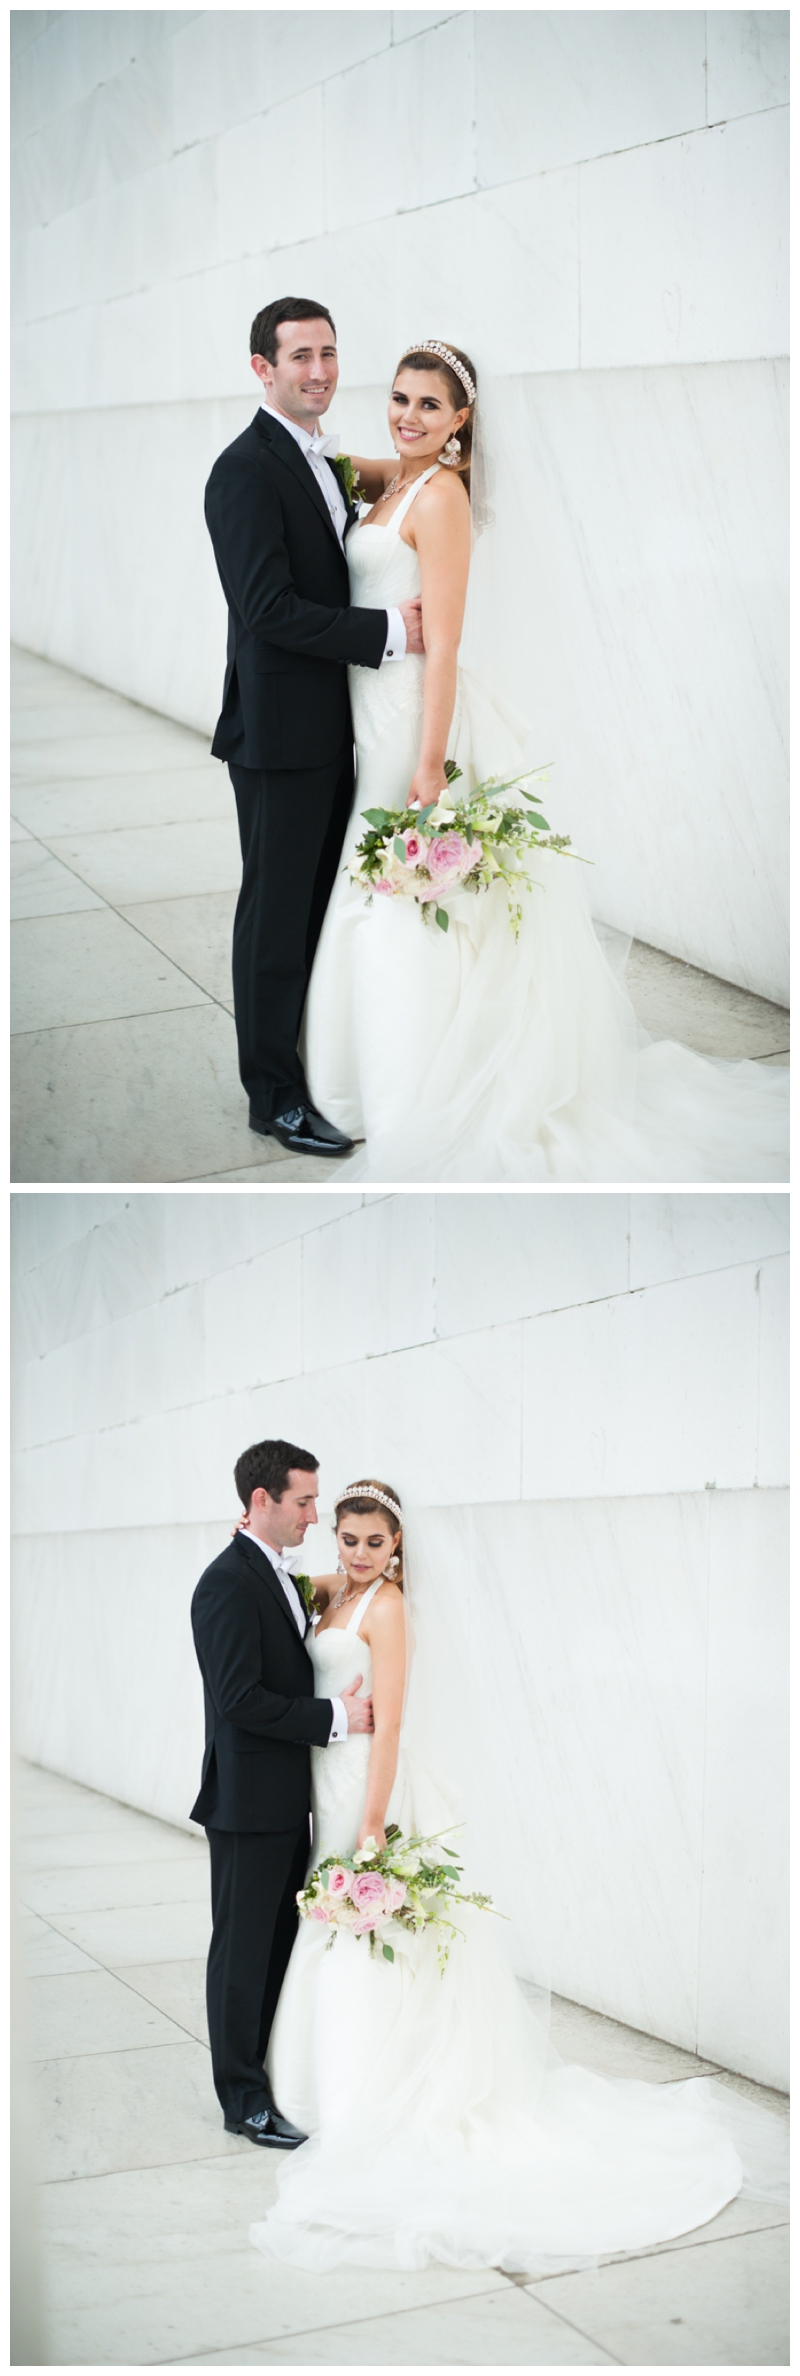 DC Wedding Day Portraits of Bride and Groom at the Lincoln Memorial by Rachael Foster Photography_0043.jpg